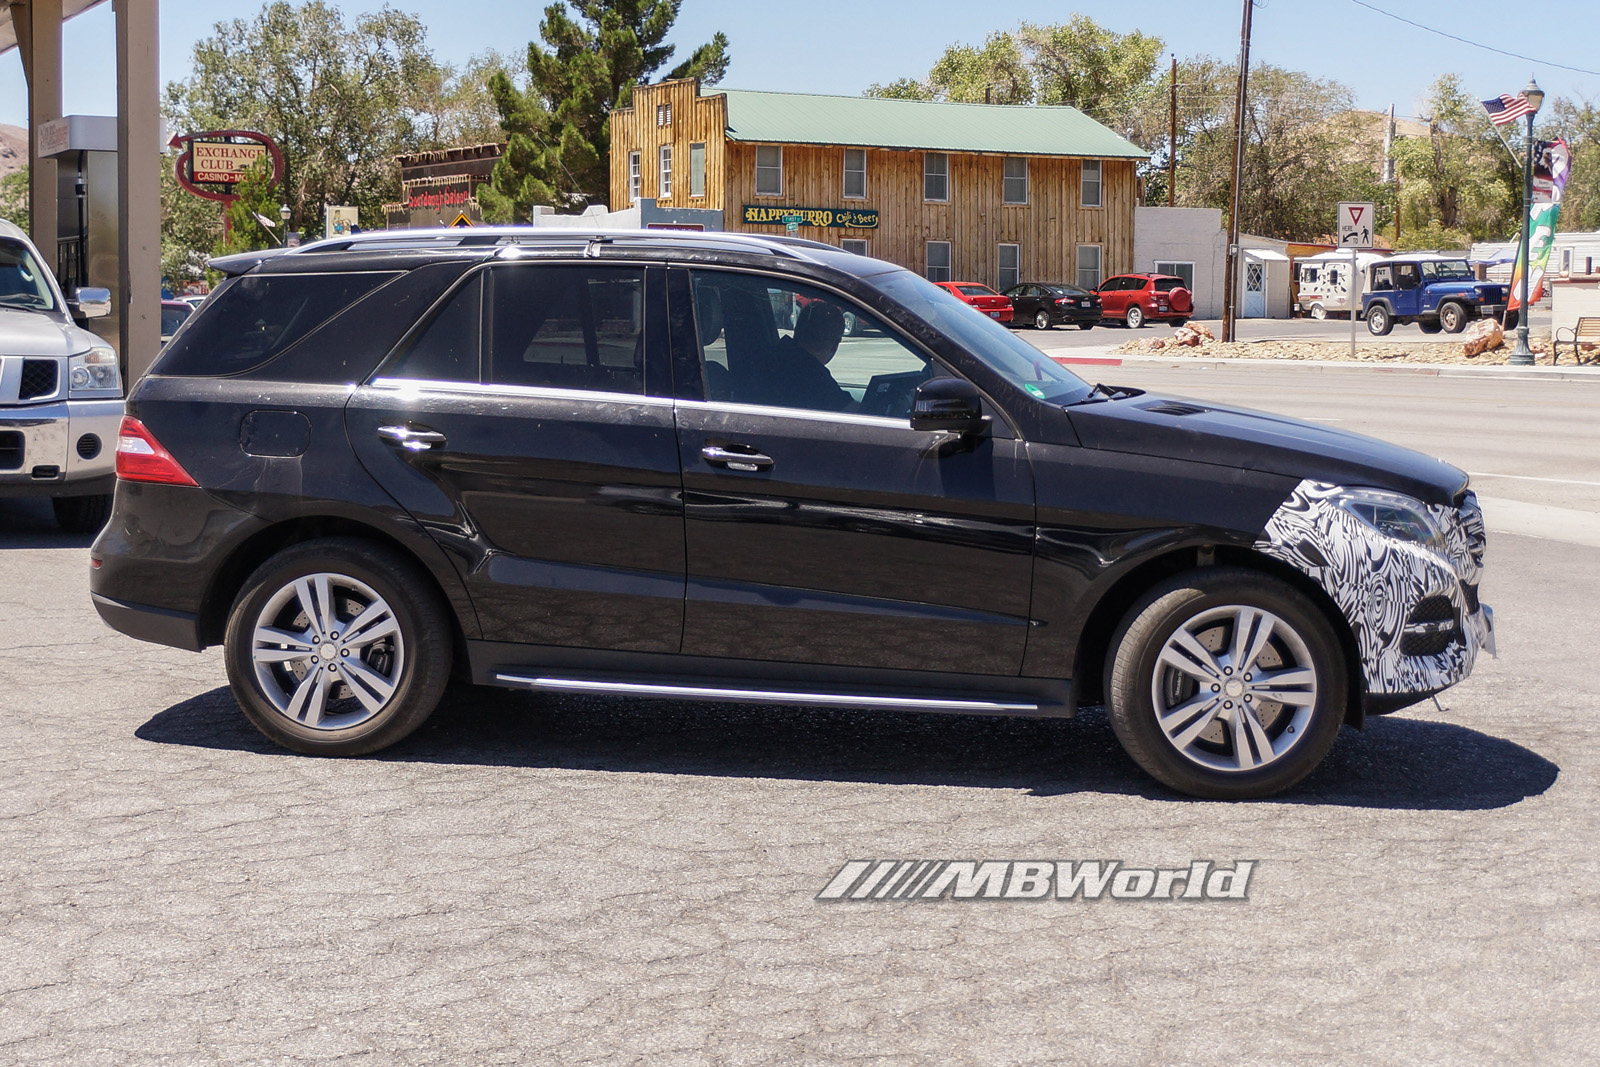 facelifted mercedes ml class caught on cam with less camo a mercedes benz. Black Bedroom Furniture Sets. Home Design Ideas